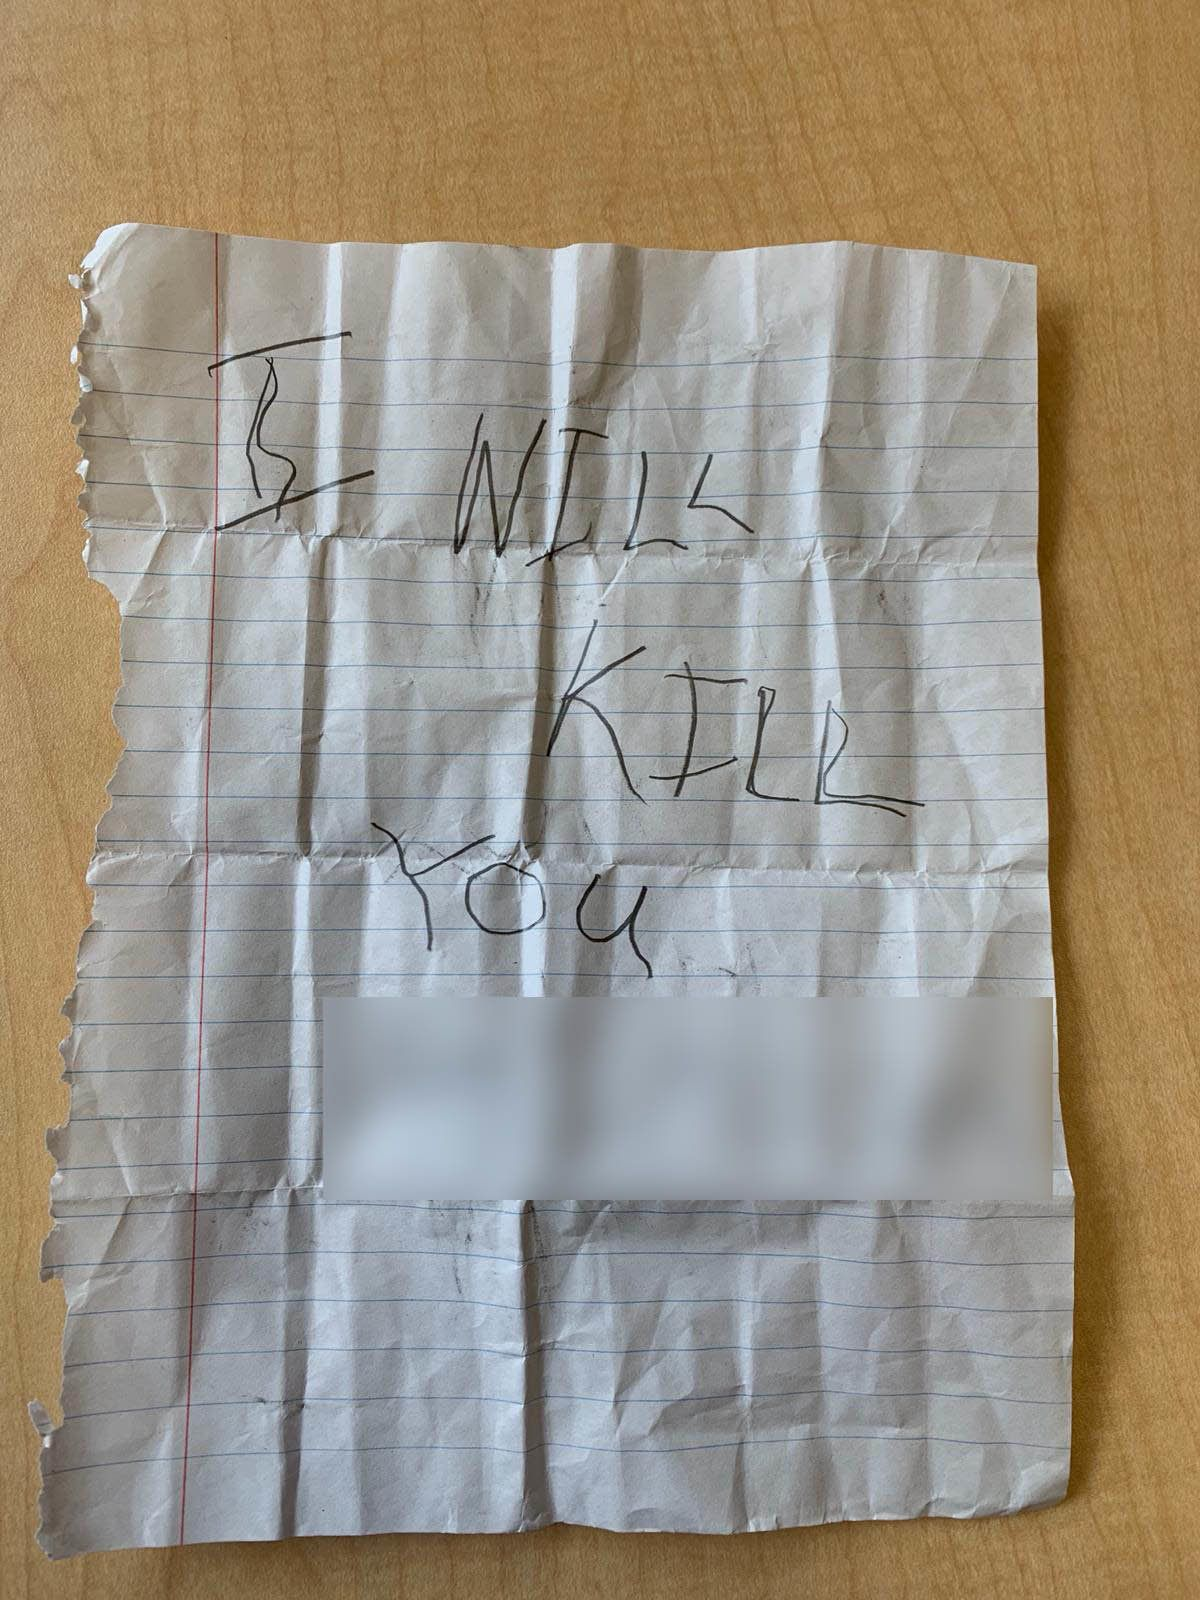 This is the second note that the fifth-grader reportedly found in her cubby.